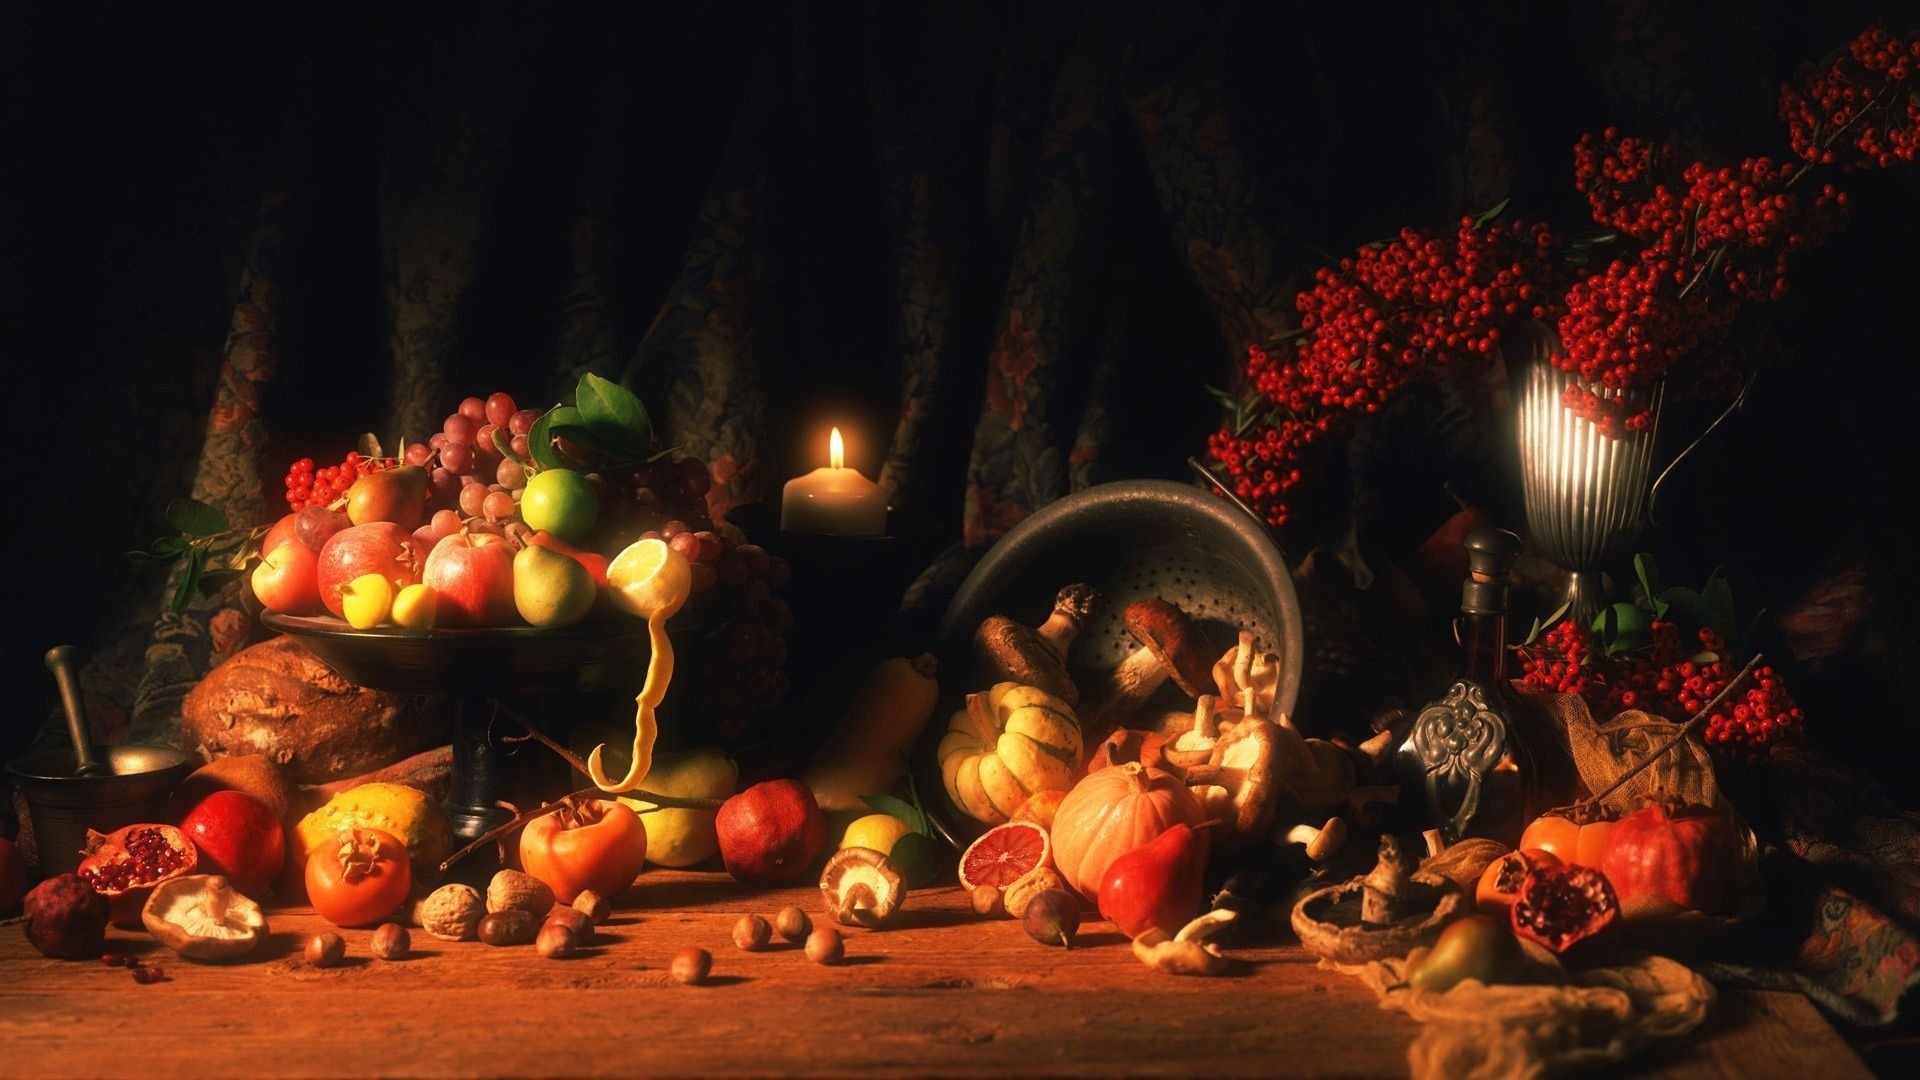 Fantastic Wallpaper High Resolution Thanksgiving - thanksgiving-wallpapers-67-images  You Should Have_468074.jpg